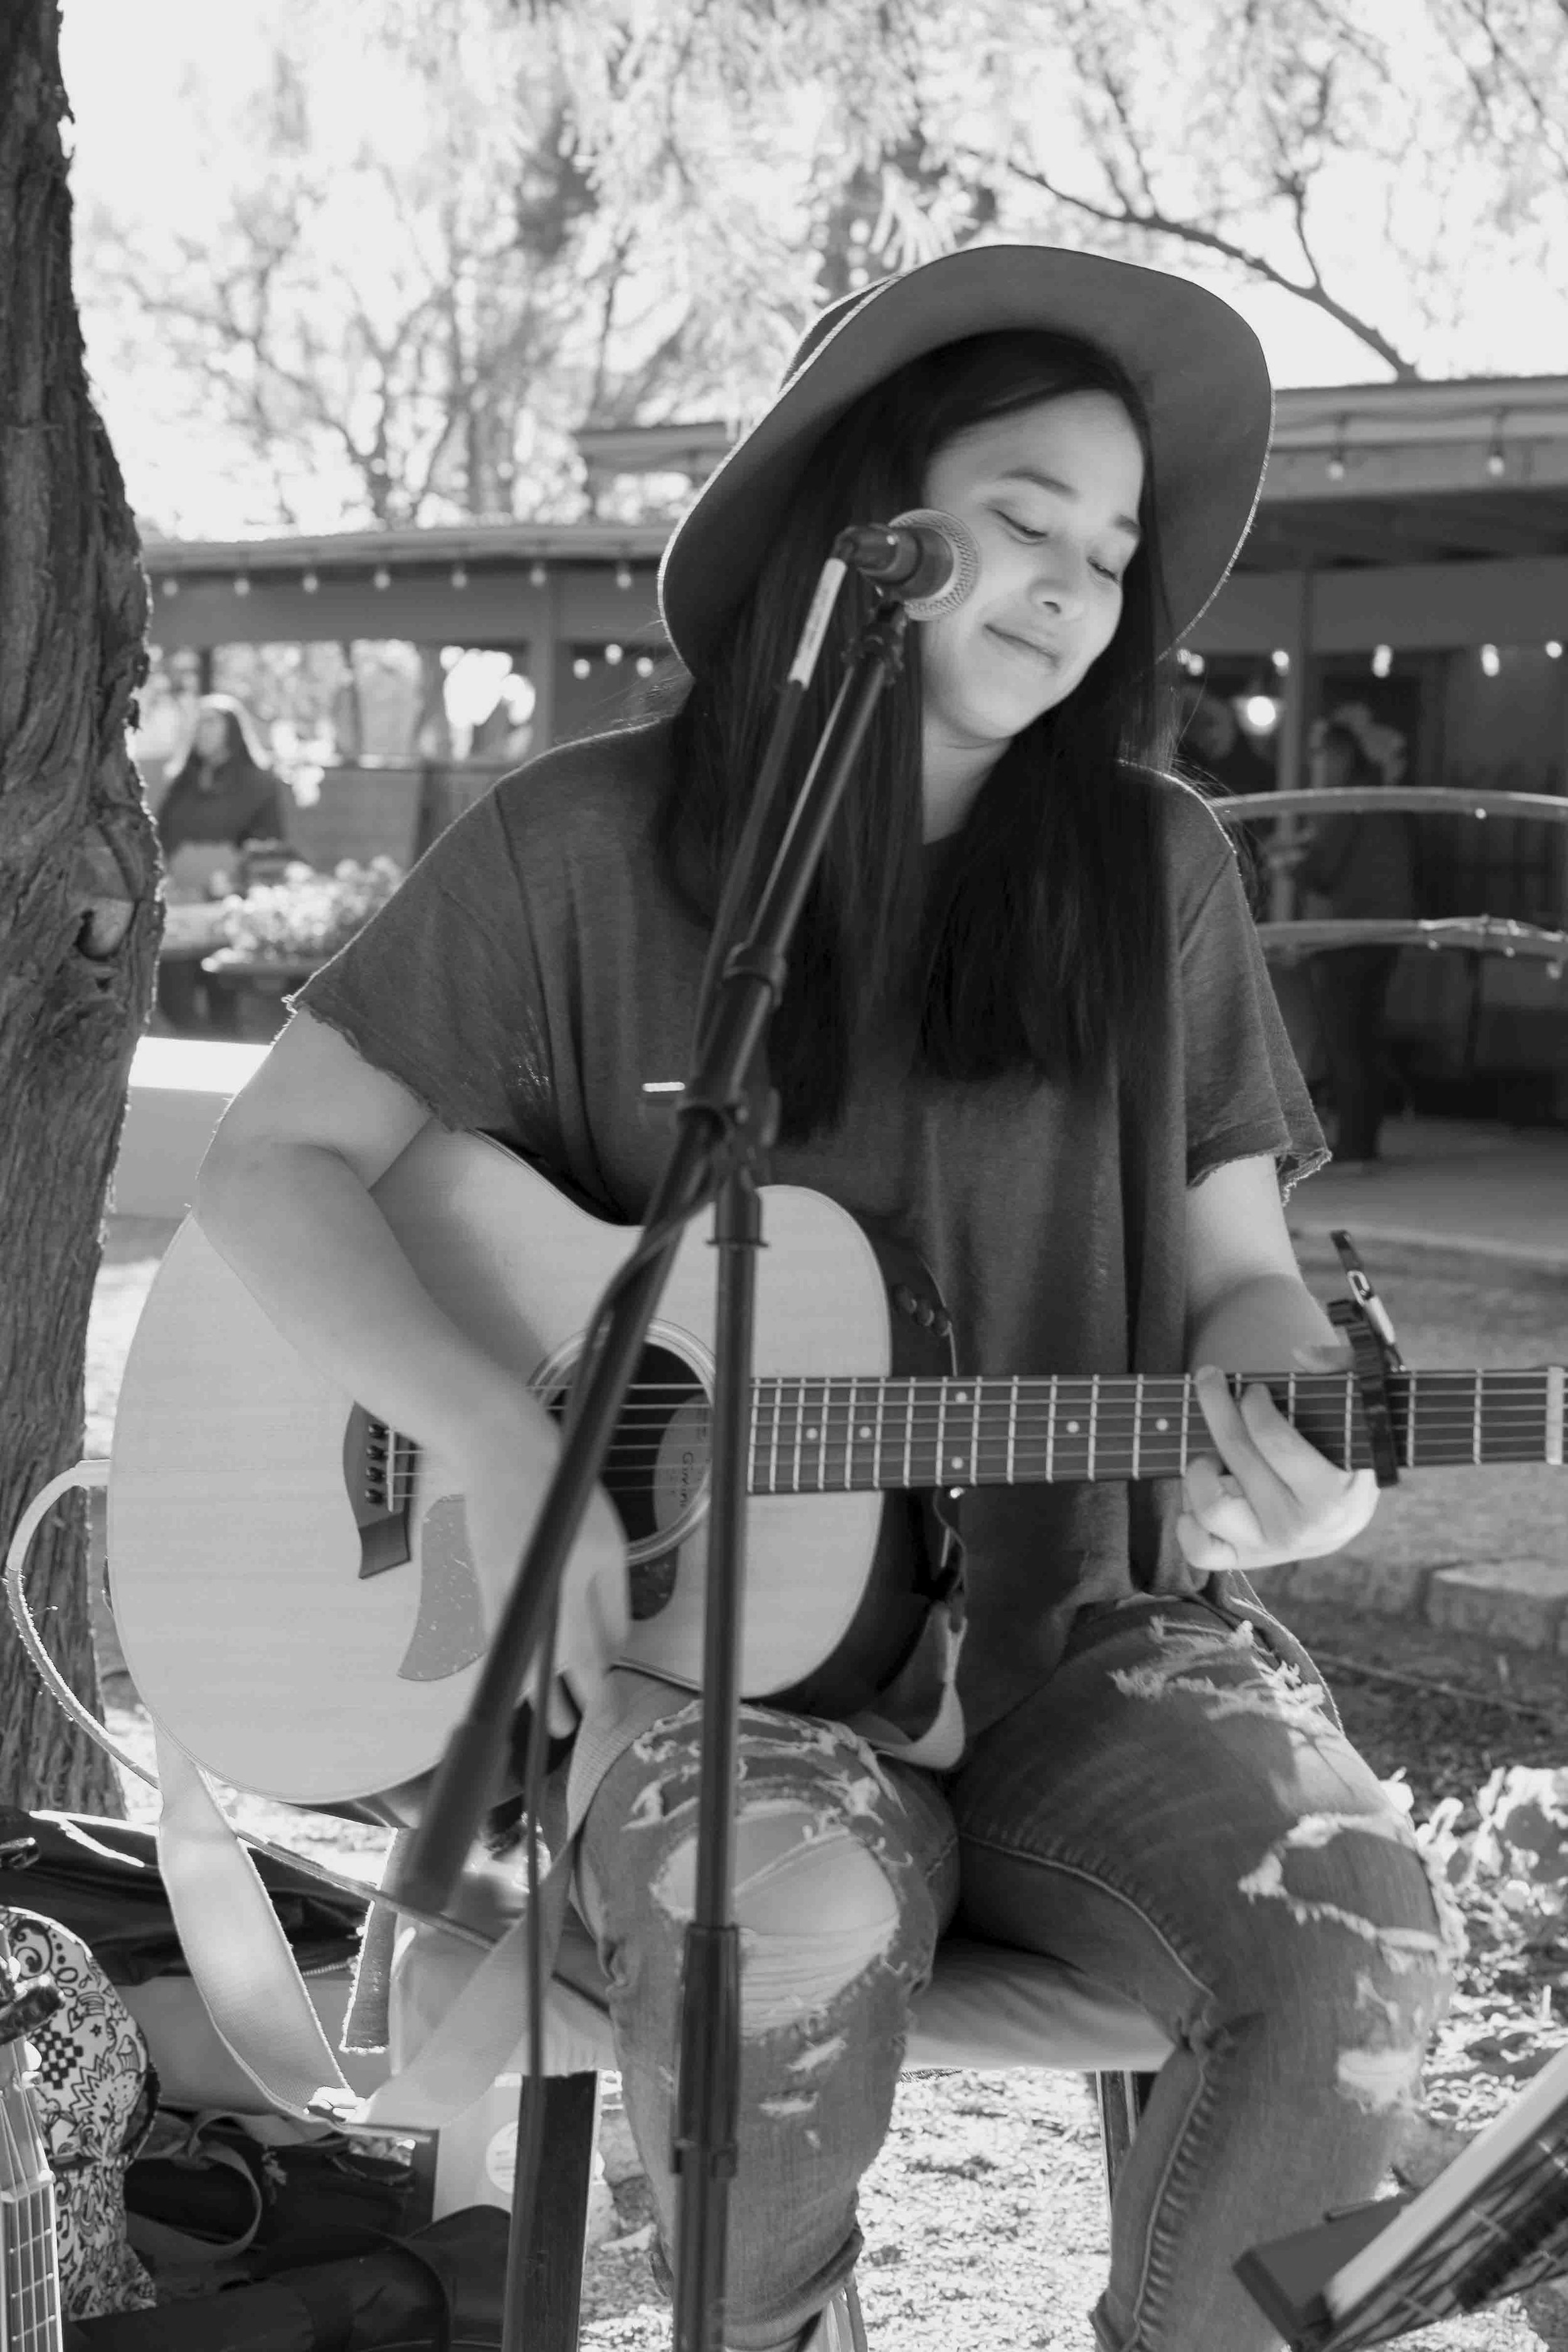 Lois Zozobrado at The Farm at South Mountain v2 Low Res BW.jpg